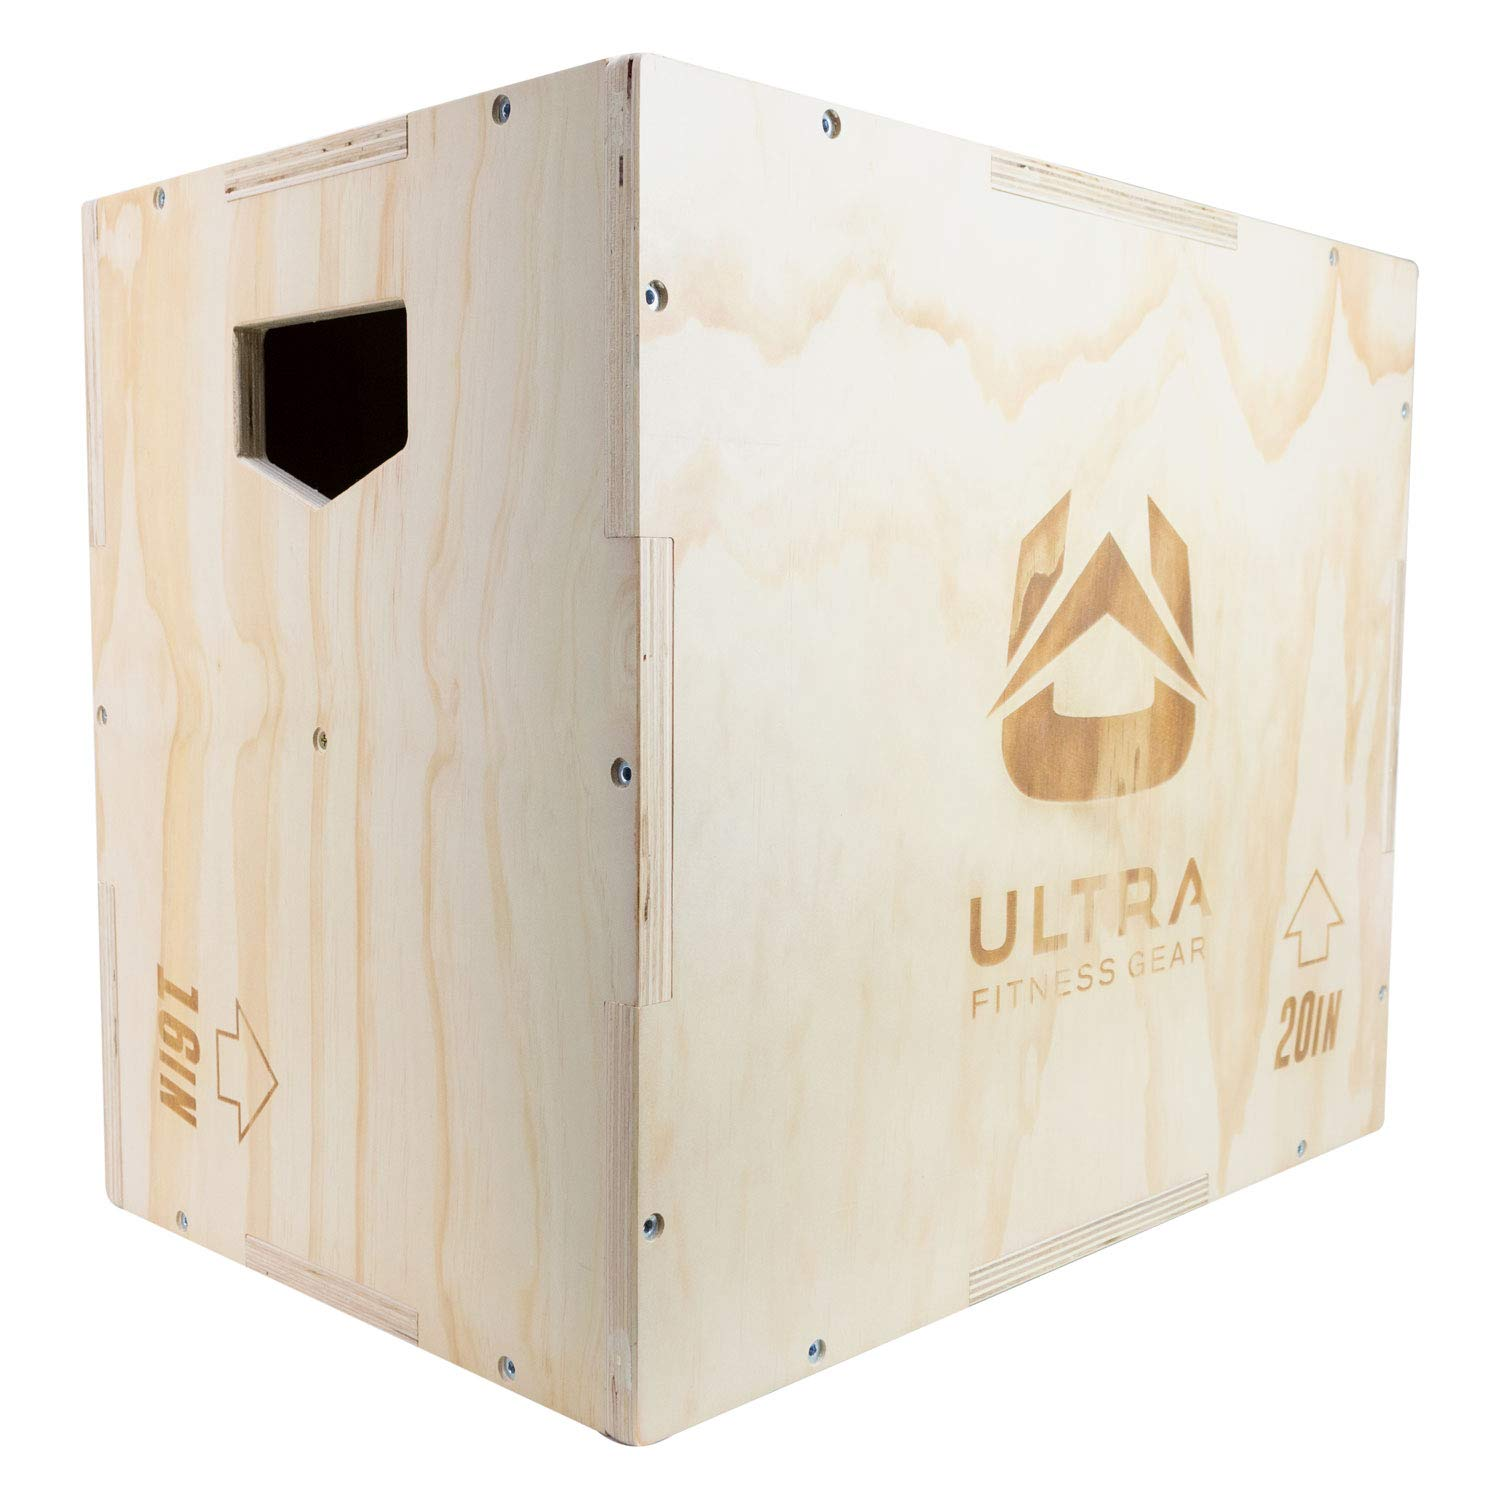 Ultra Fitness Gear 3 in 1 Wood Plyo Box for Jump, Crossfit, MMA Training. Plyometrics. Sizes 30 24 20, 24 20 16, 20 18 16, or 16 14 12